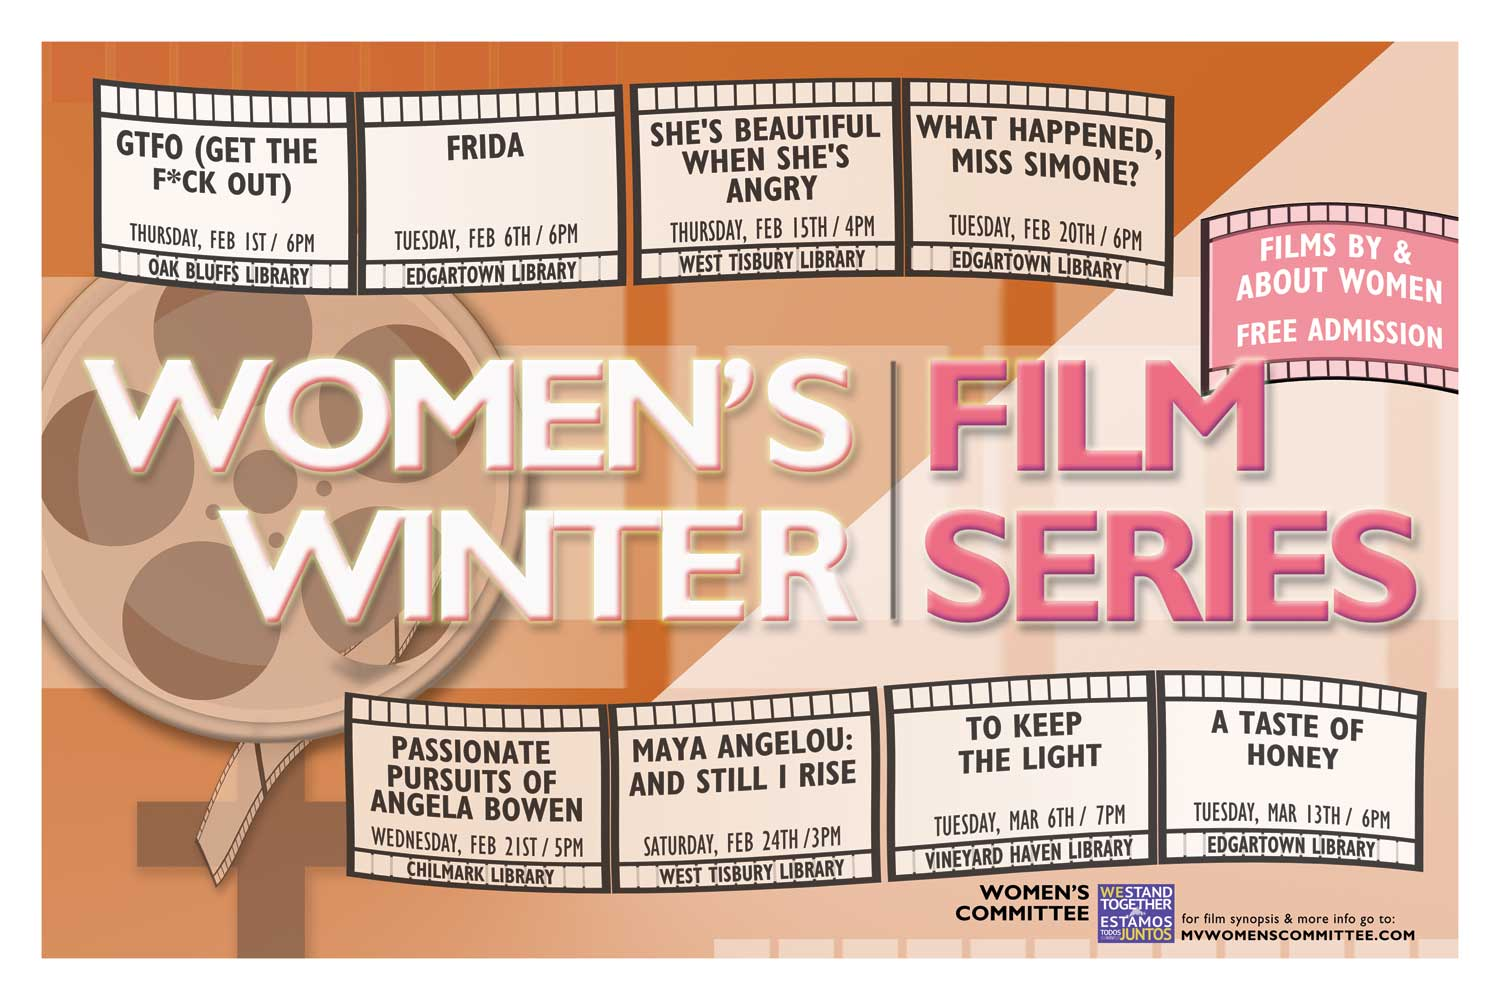 Women's Winter Film Series